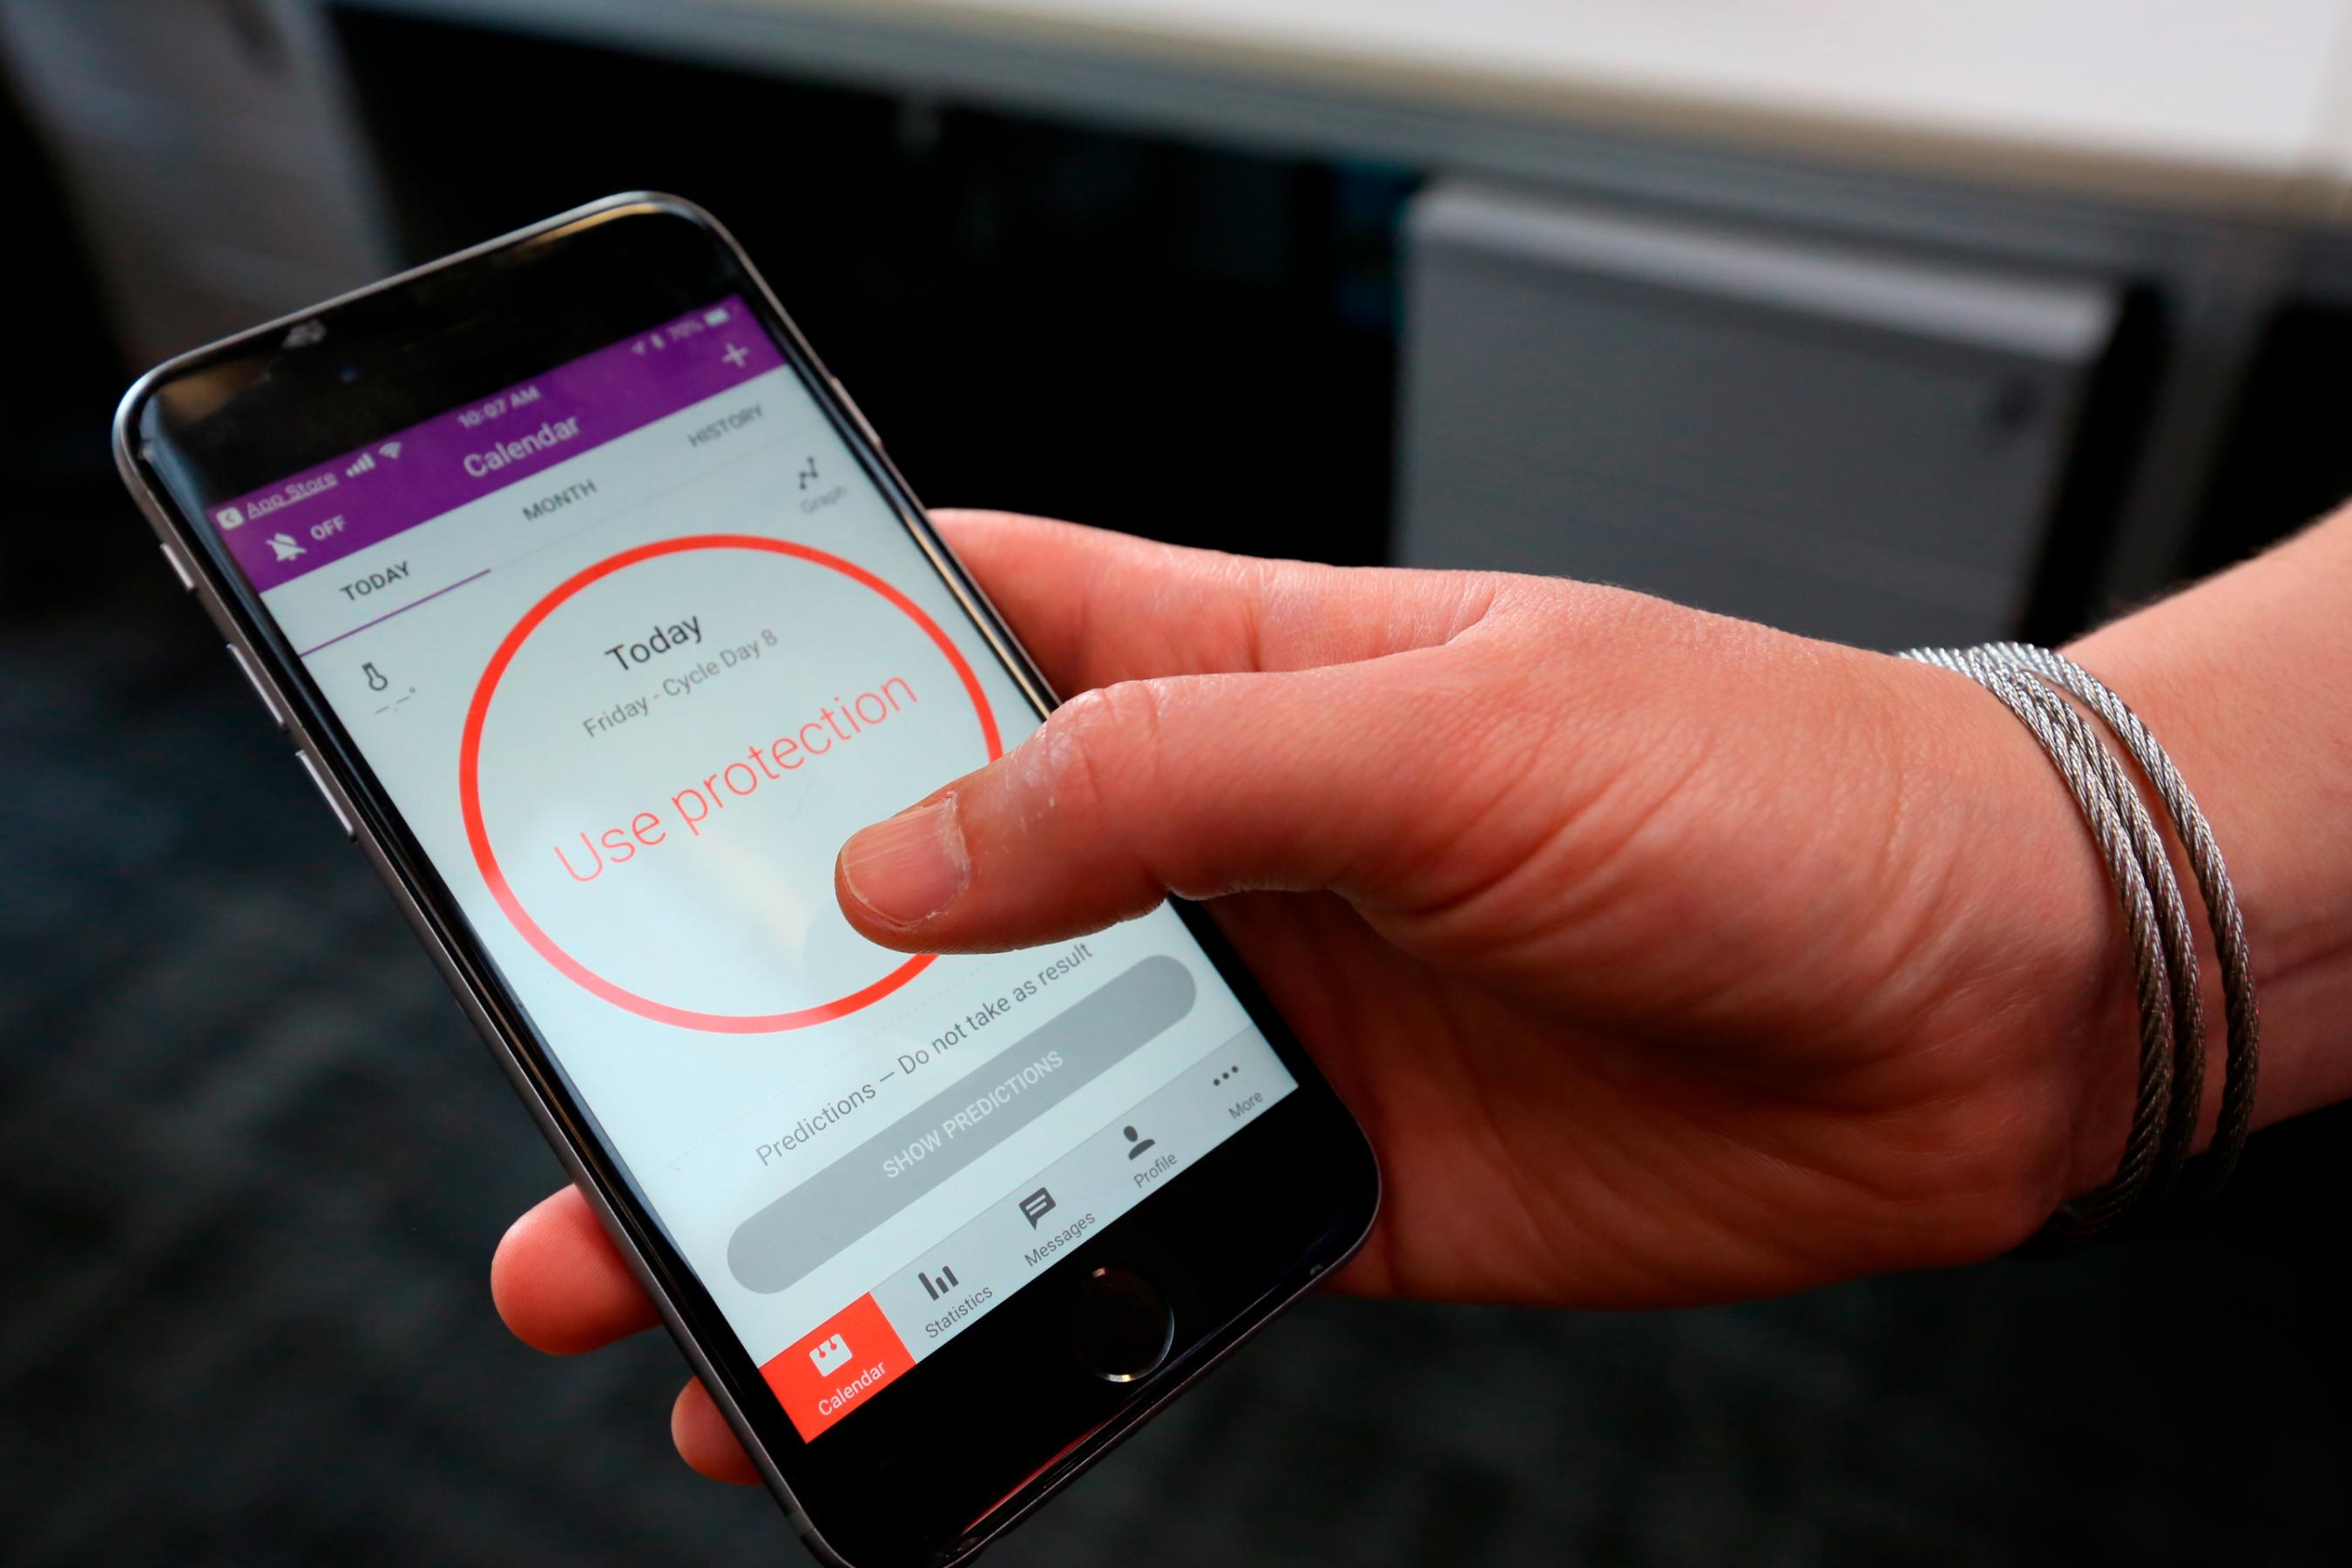 Fertility apps can be 'misleading' for women, review finds